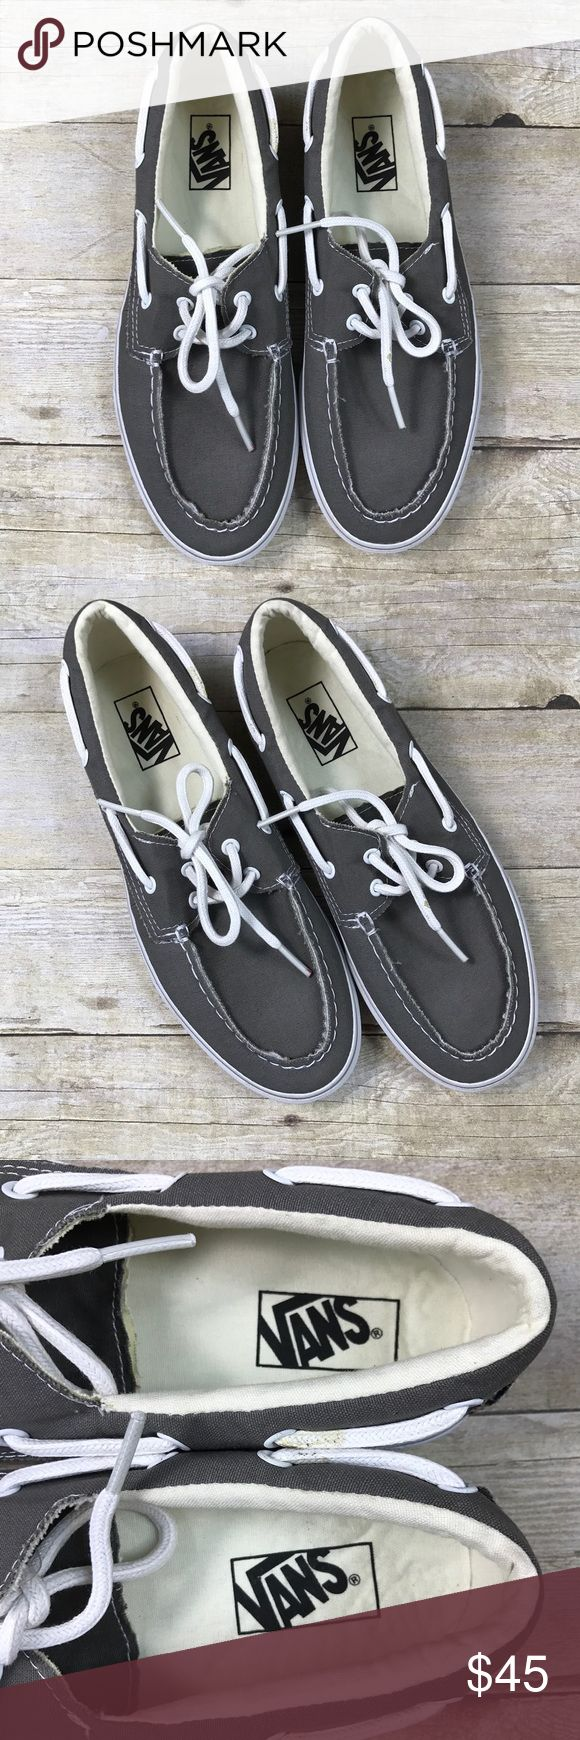 Vans Zapato Del Barco Boat Shoes Gray Slip On 10.5 New without box !!!  Van's men's / women's boat shoes  Zapato Del Barco  Distressed gray canvas slip ons  Men's size 10.5/ women's 12 Vans Shoes Boat Shoes